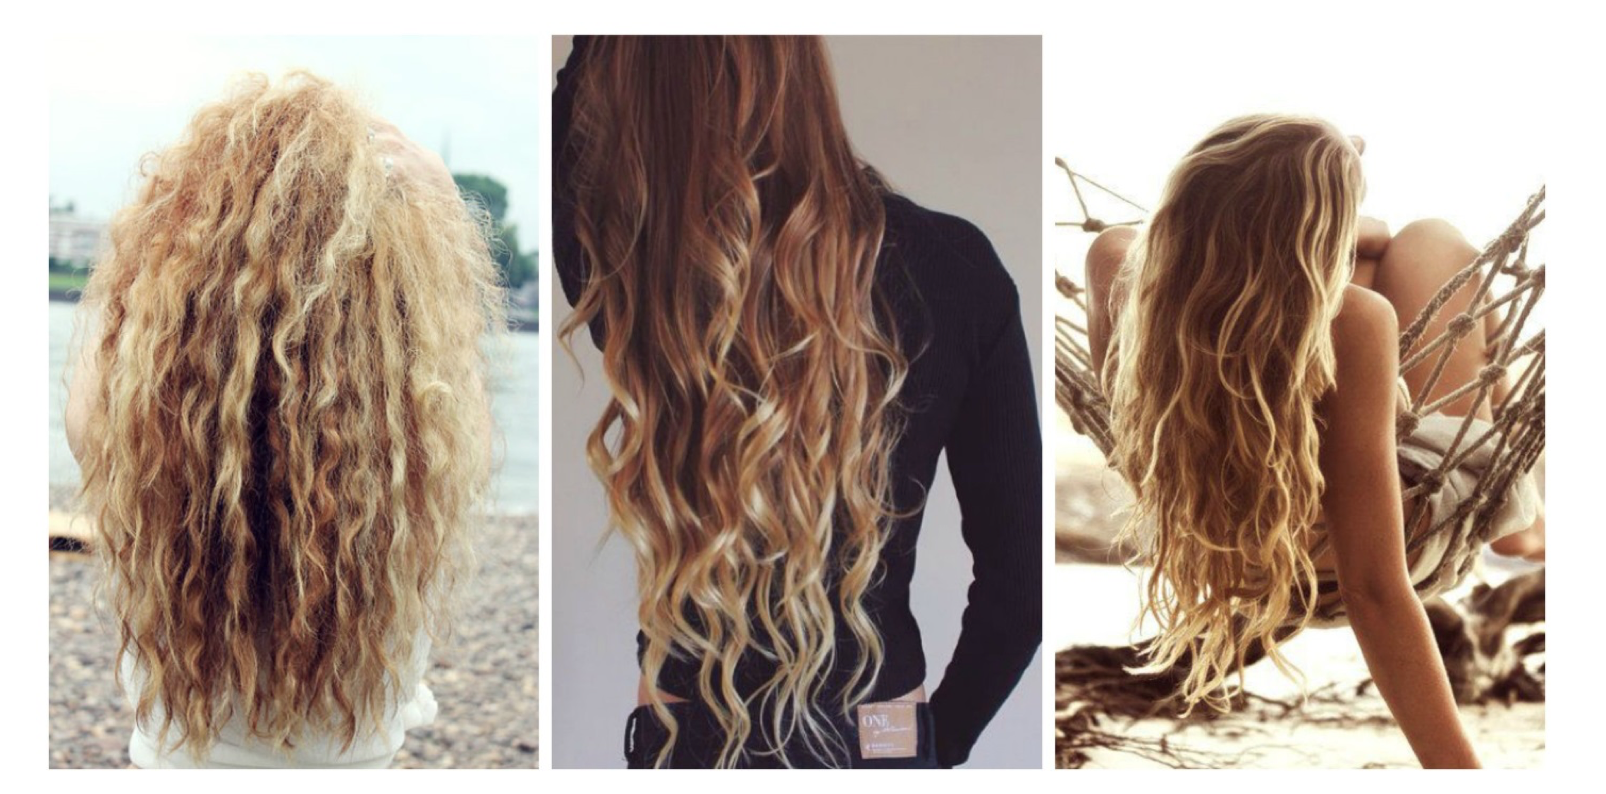 Three women with surfer girl hair styles